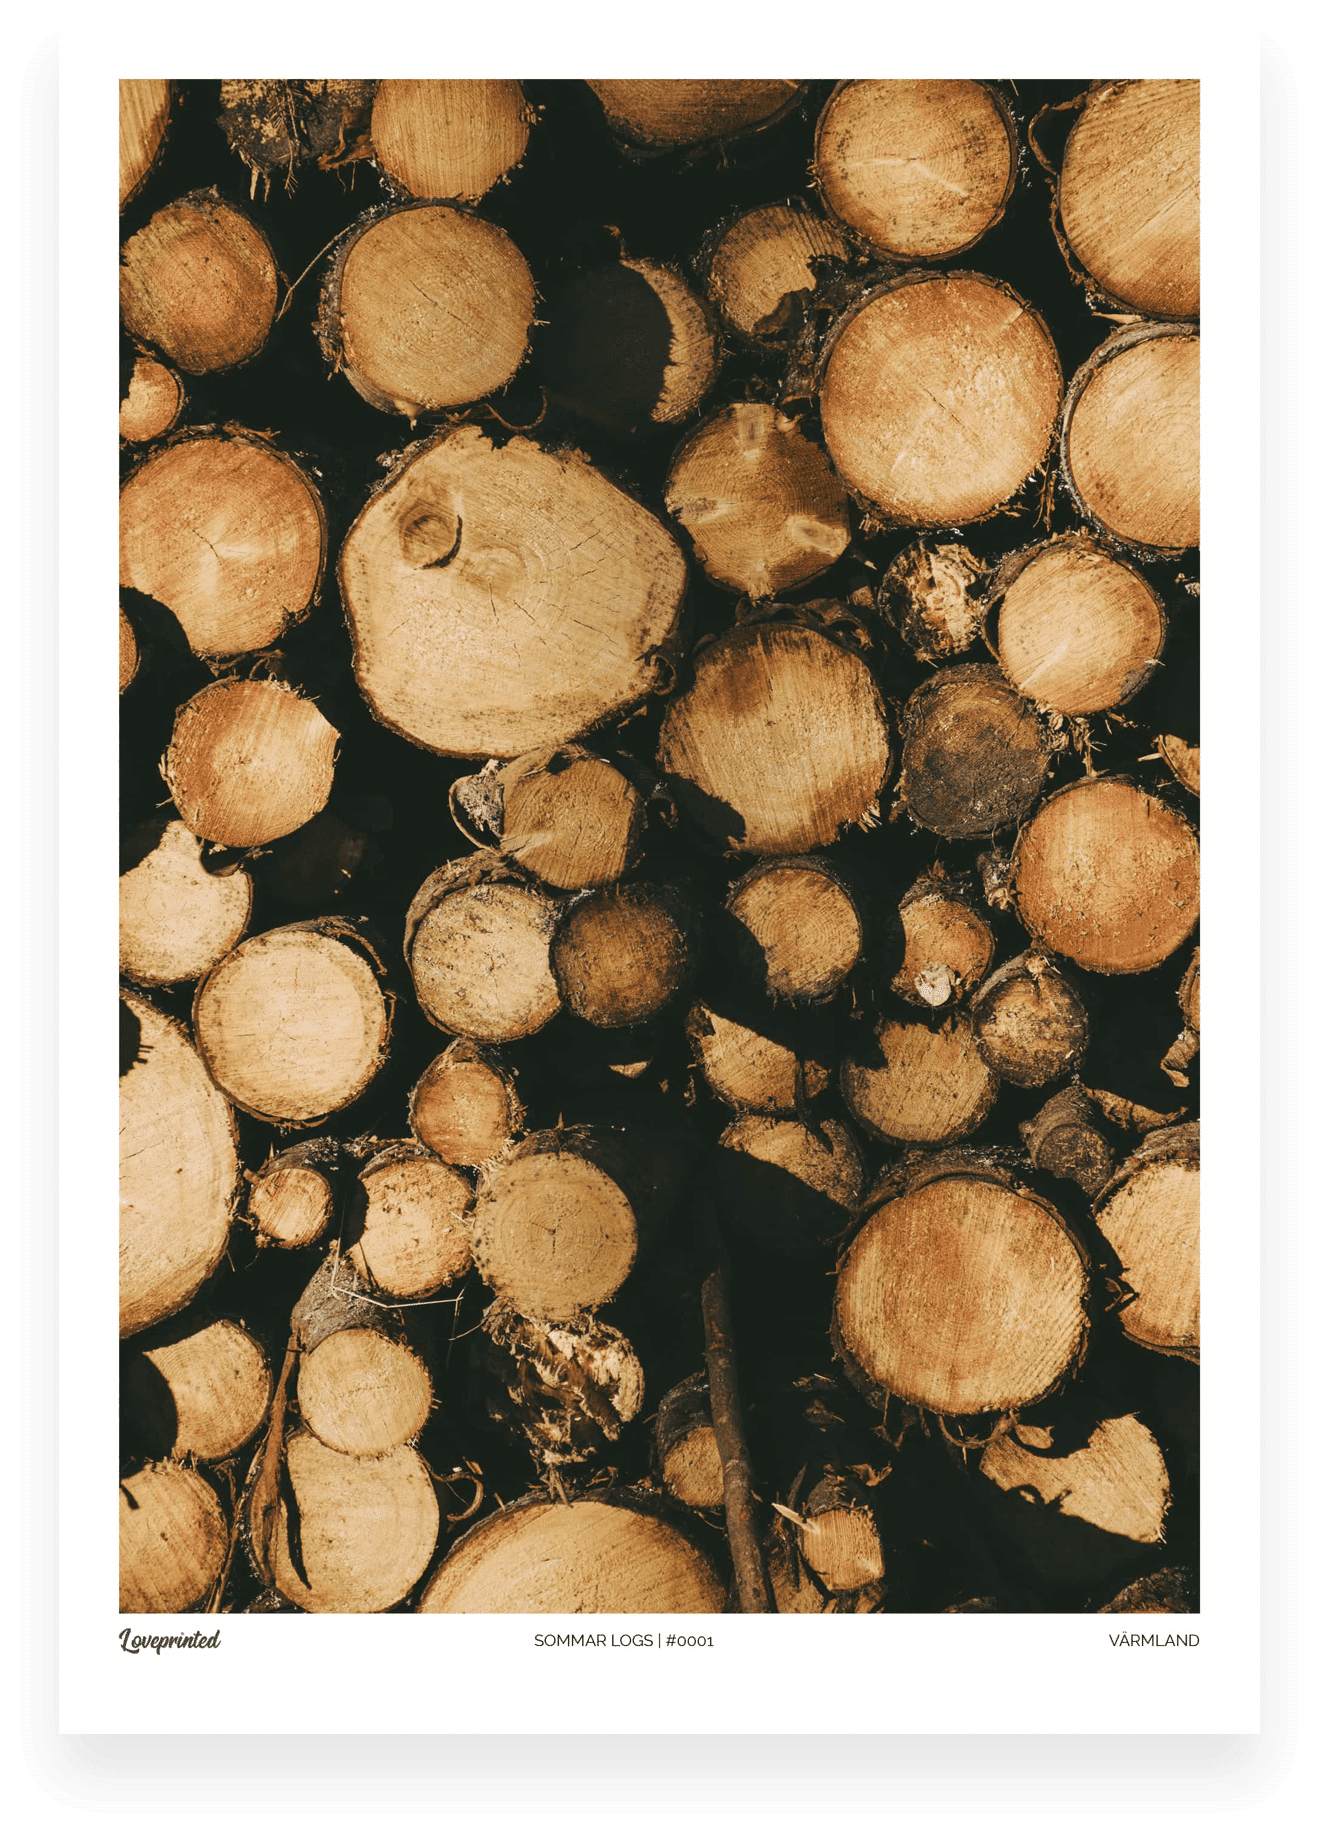 Sommar logs | A closeup Image of a pile of logs in the Swedish Forest made by Loveprinted